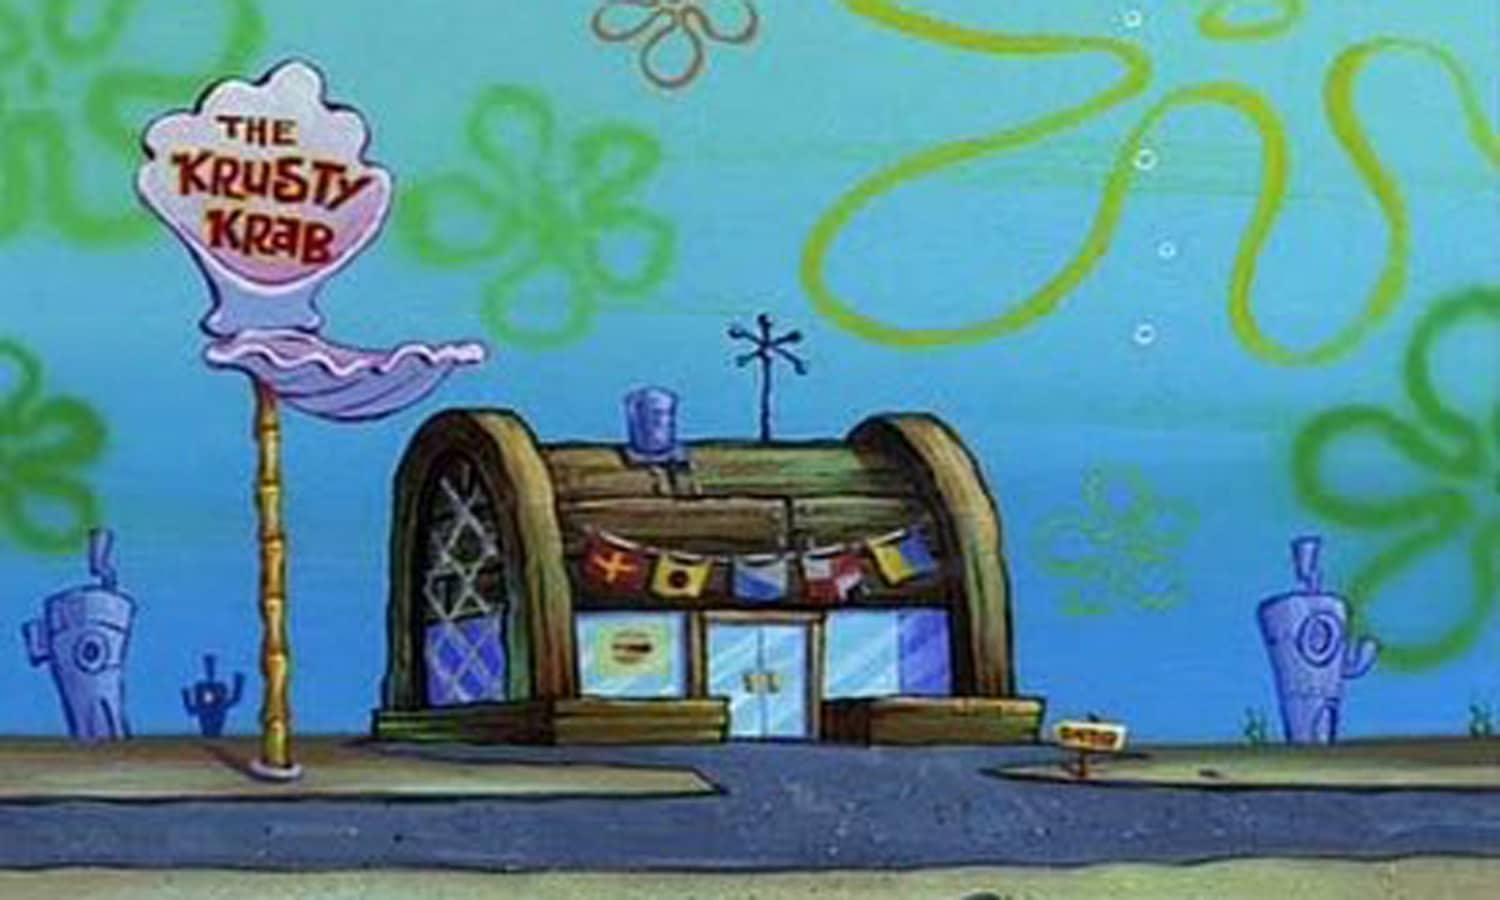 Read This Amazingly Good Complaint About The Krusty Krab